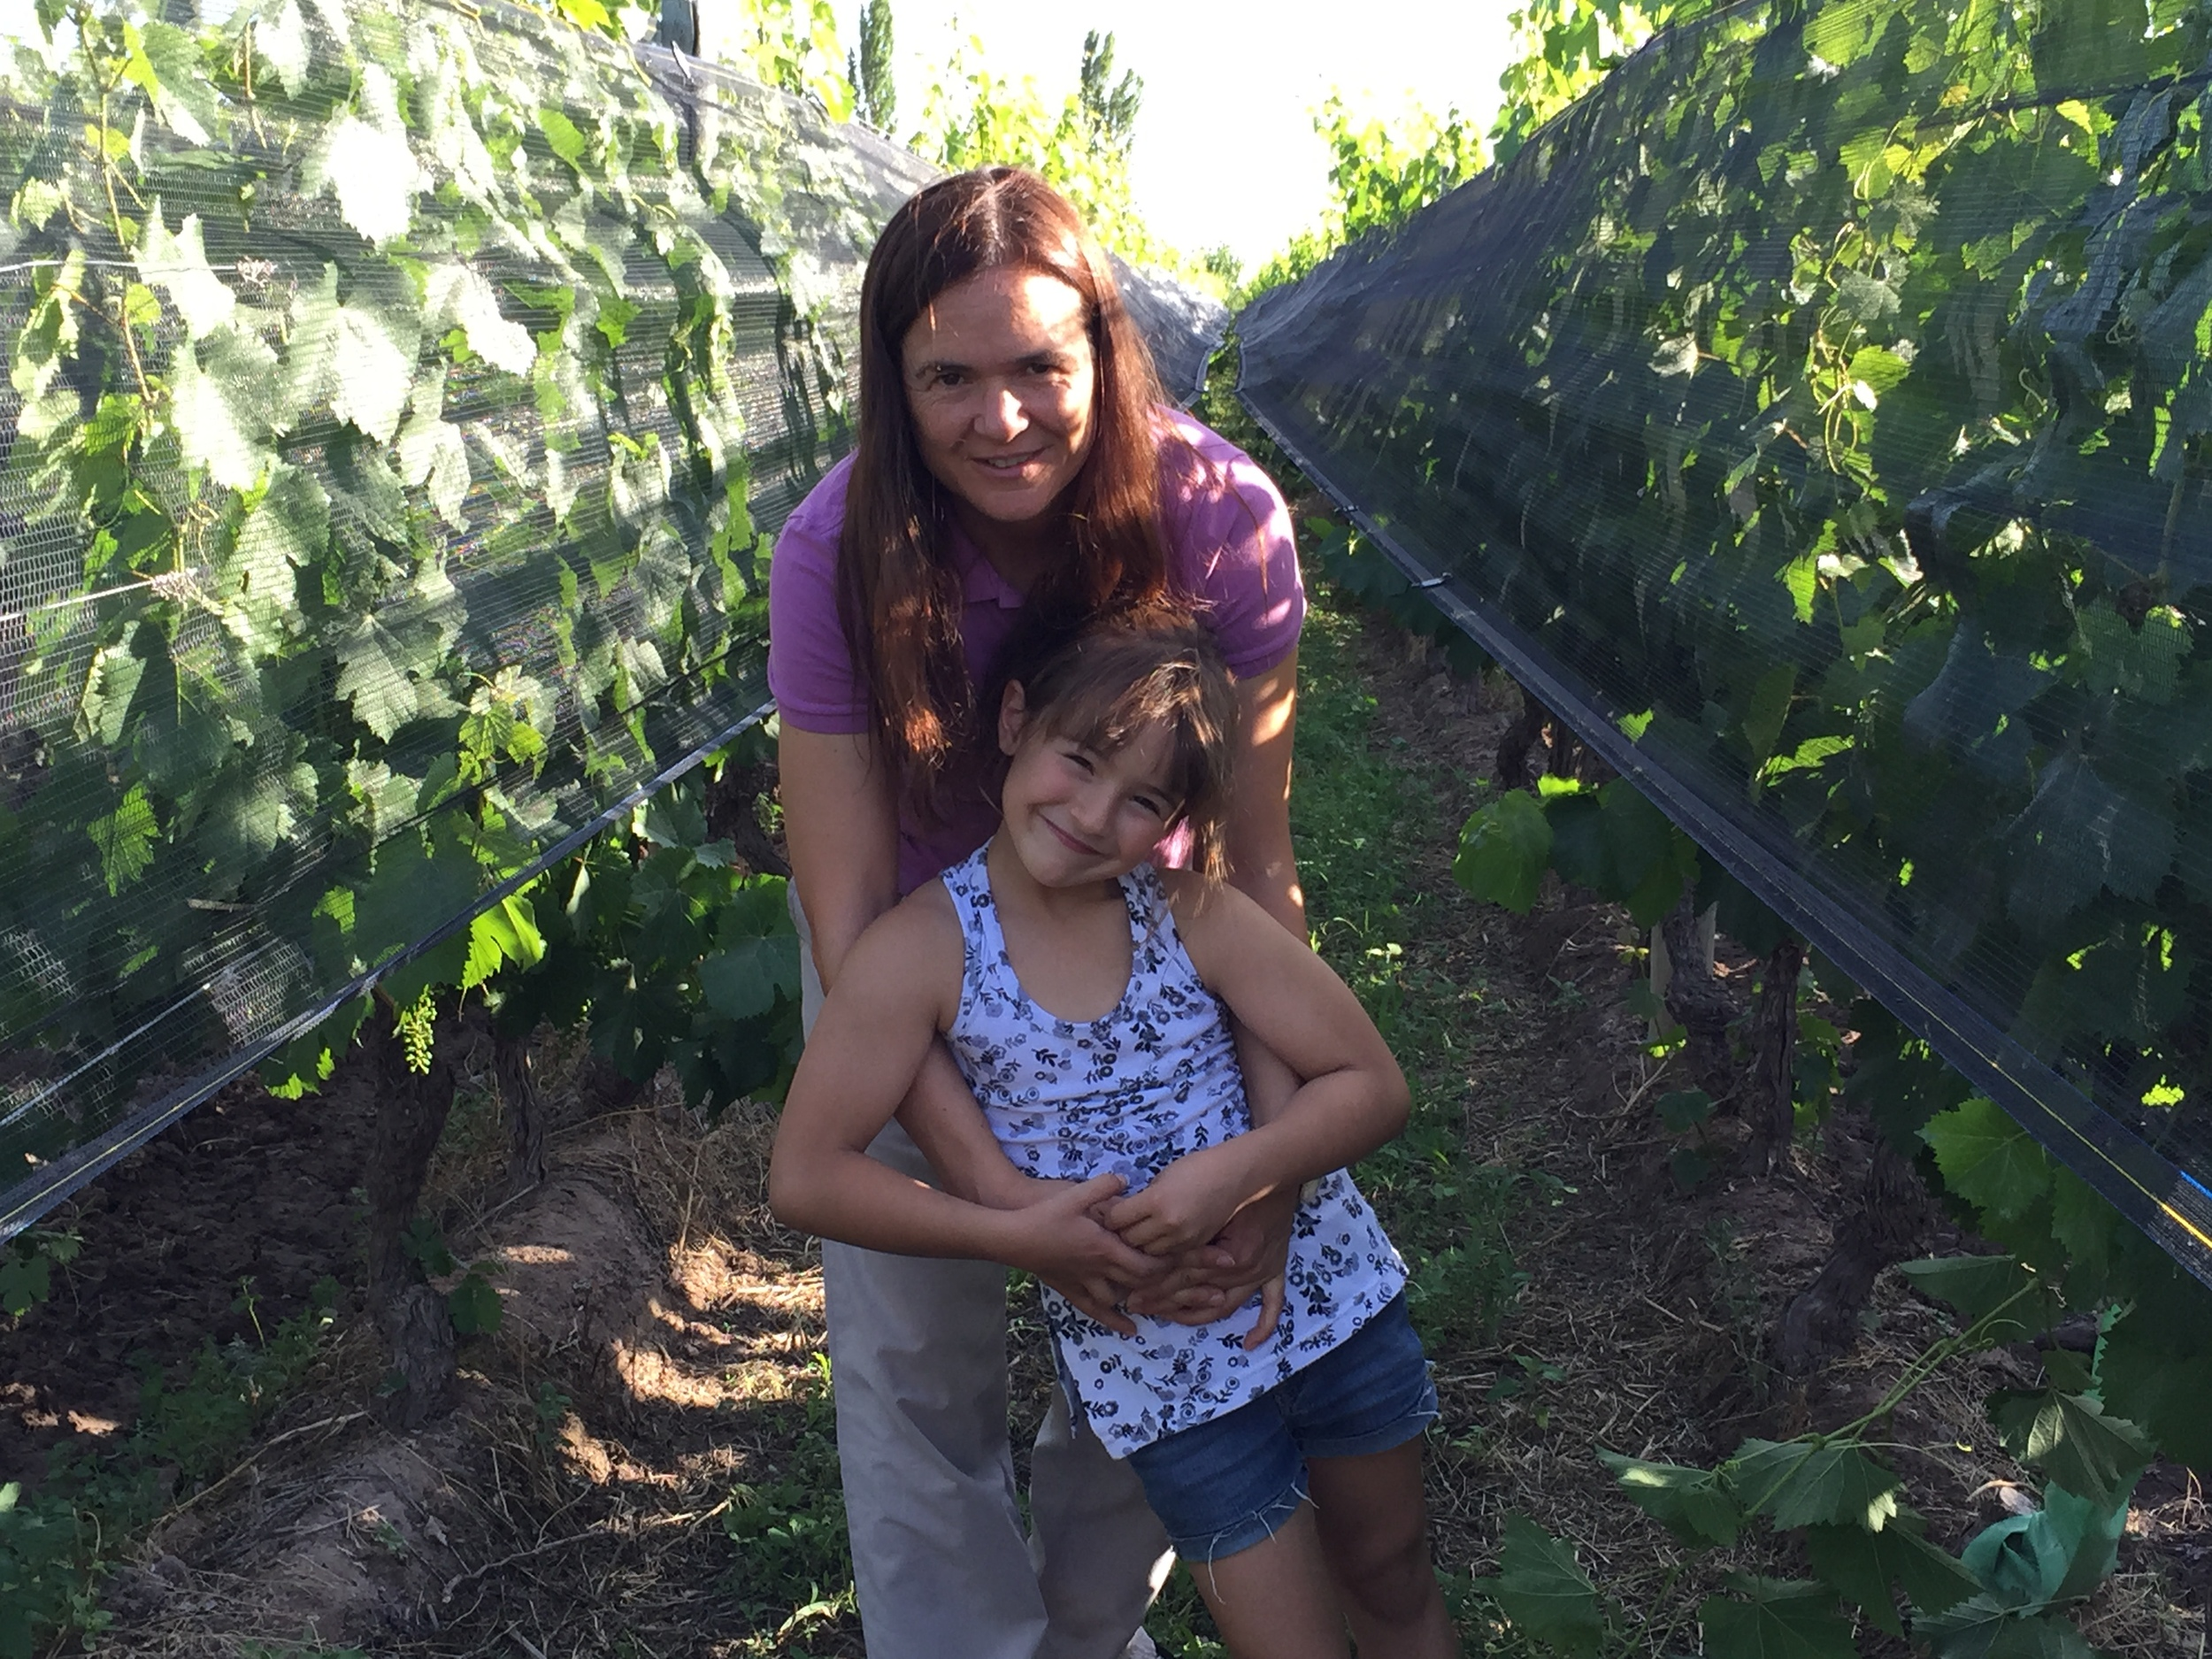 Andrea Marchiori of Marchiori and Barraud, with her youngest daughter, in the family's vineyards.